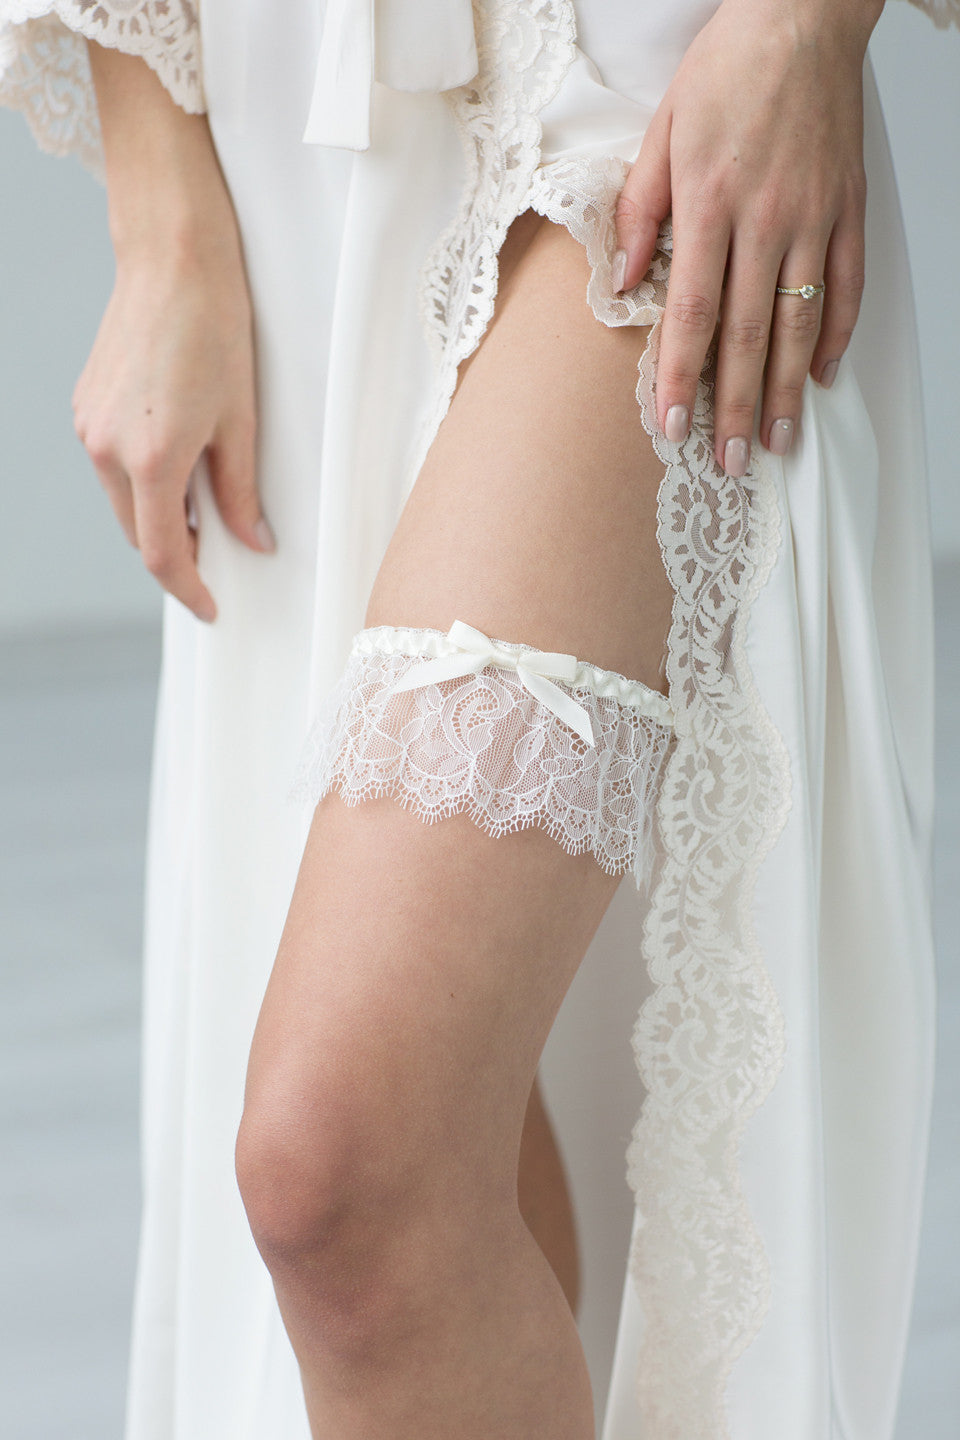 Bridal Garter Champagne Lace Ribbon by Liumy Design Atelje